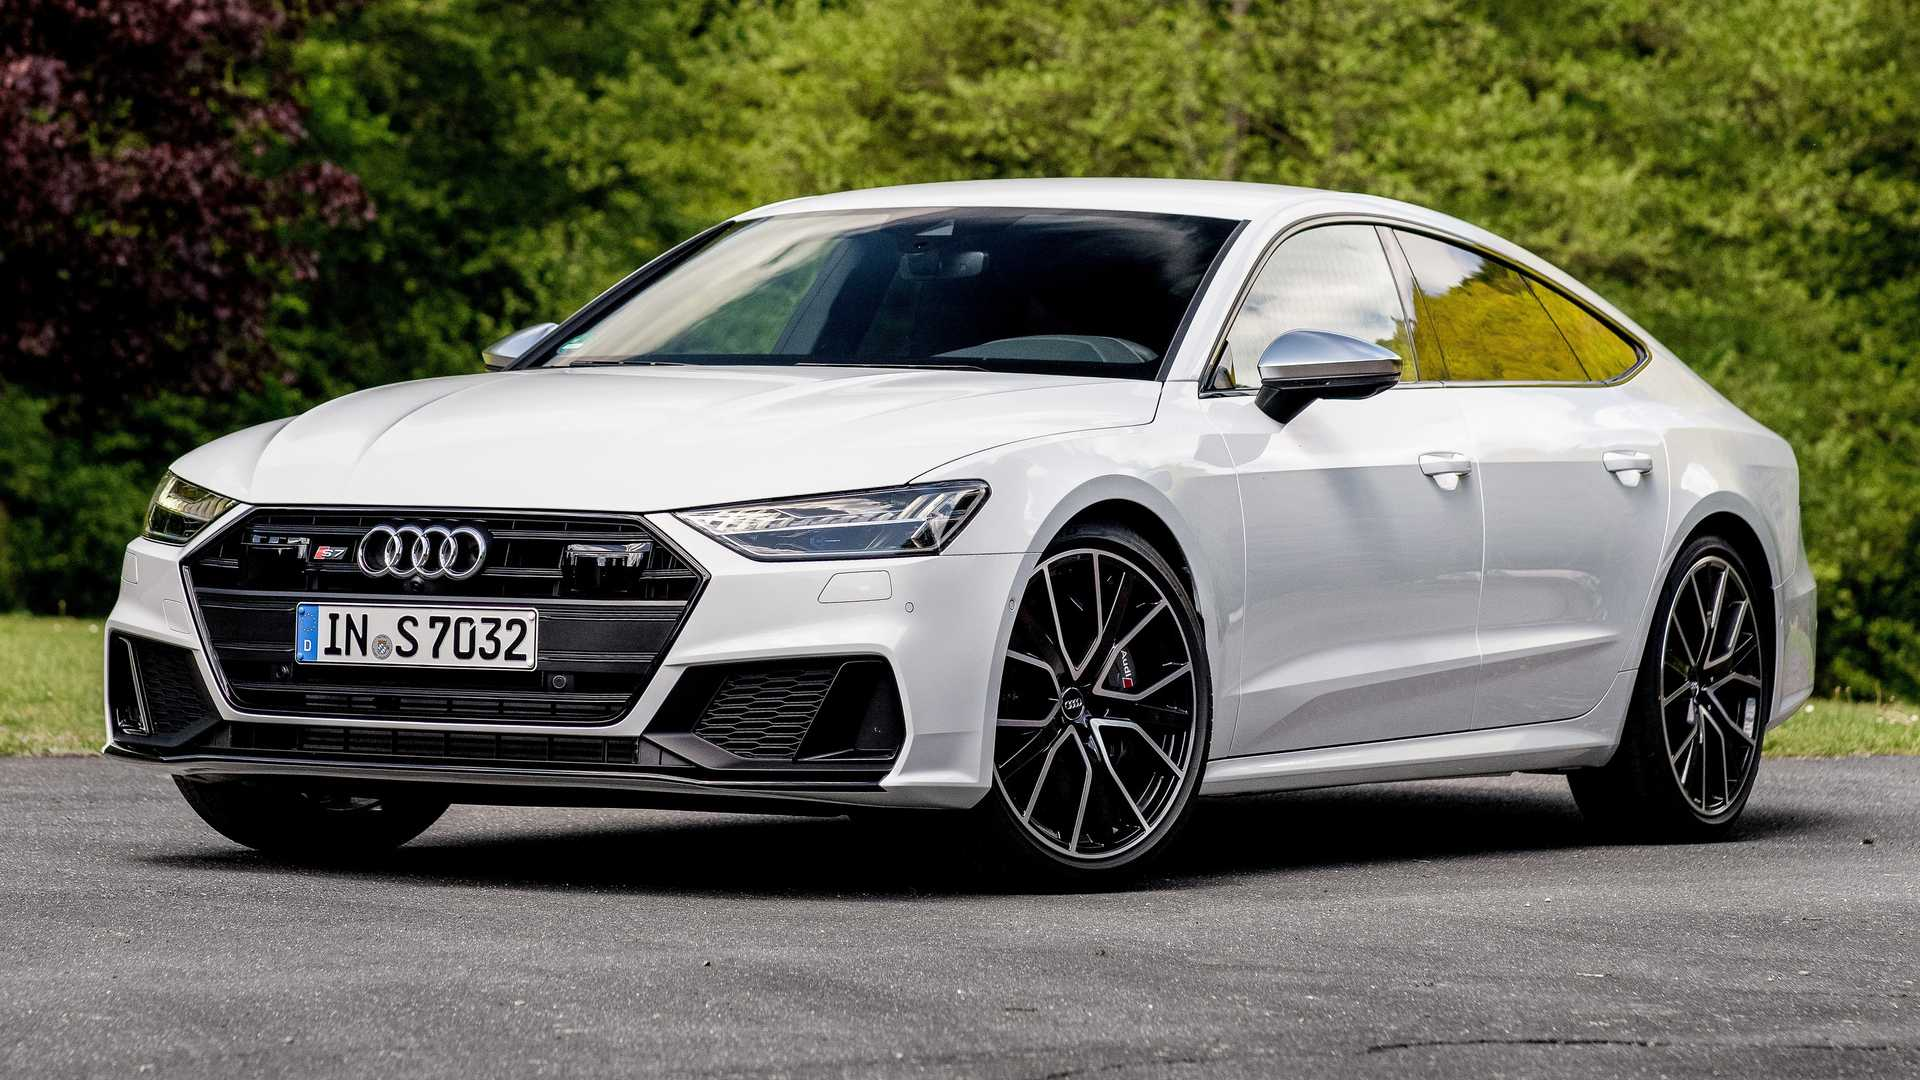 2020 Audi S7 Price and Review